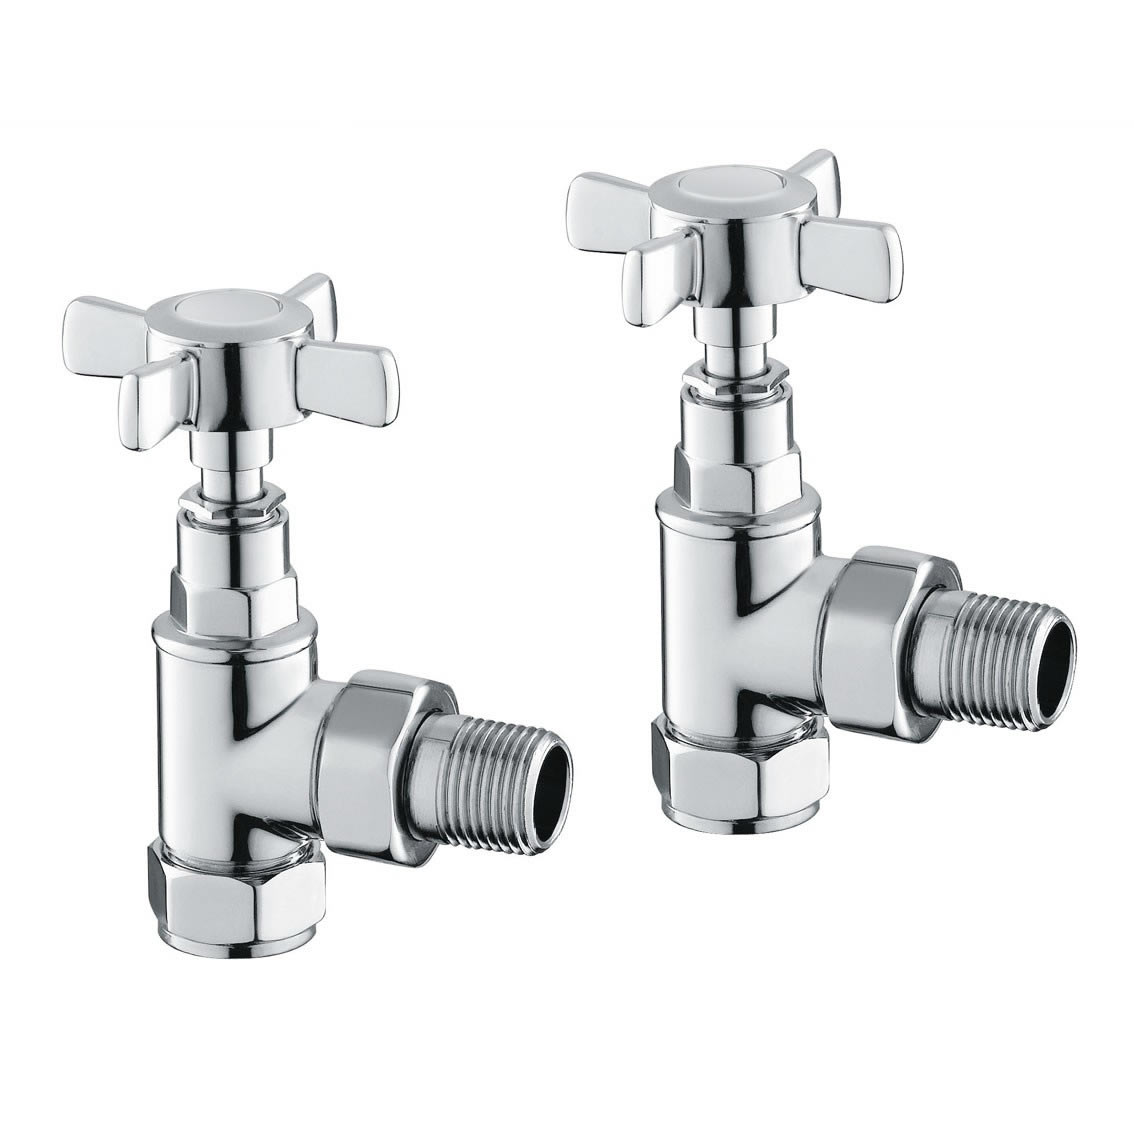 Reina Bronte (Traditional) Angled Chrome Valves